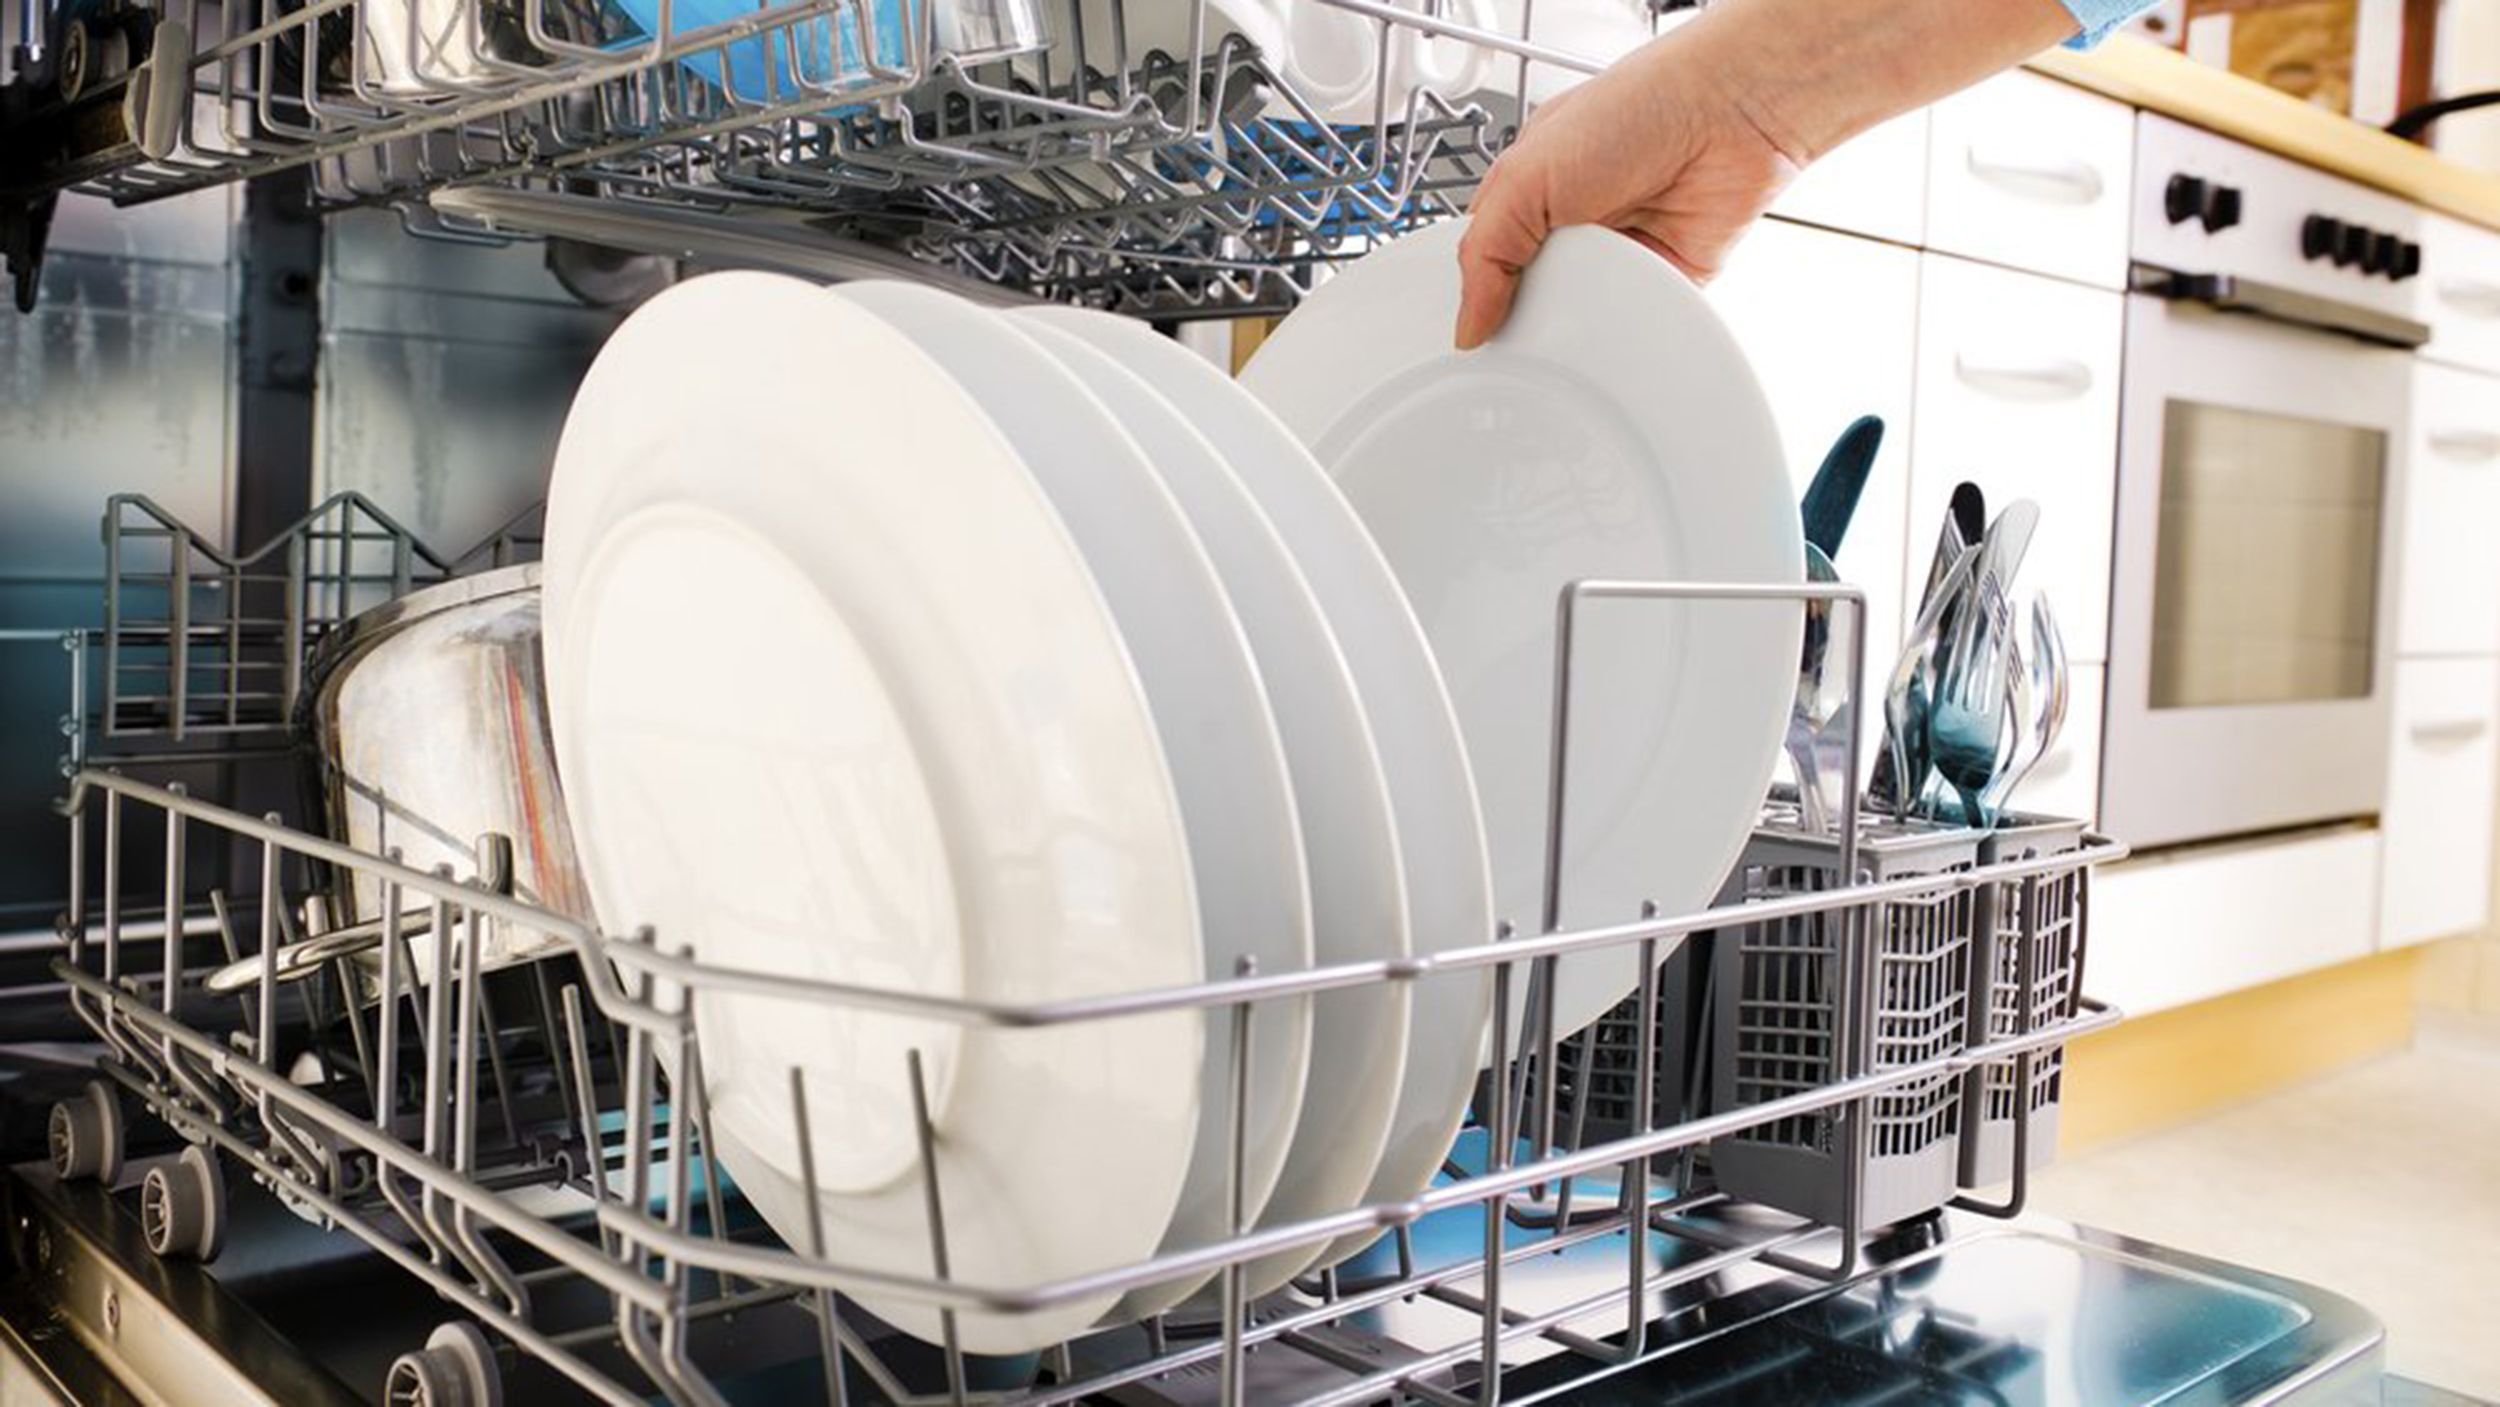 Is Your Dishwasher On The Brinks Is It Performing Less Than Satisfactorily Is The Appliance Making S Cleaning Your Dishwasher Clean Dishwasher Cleaning Hacks